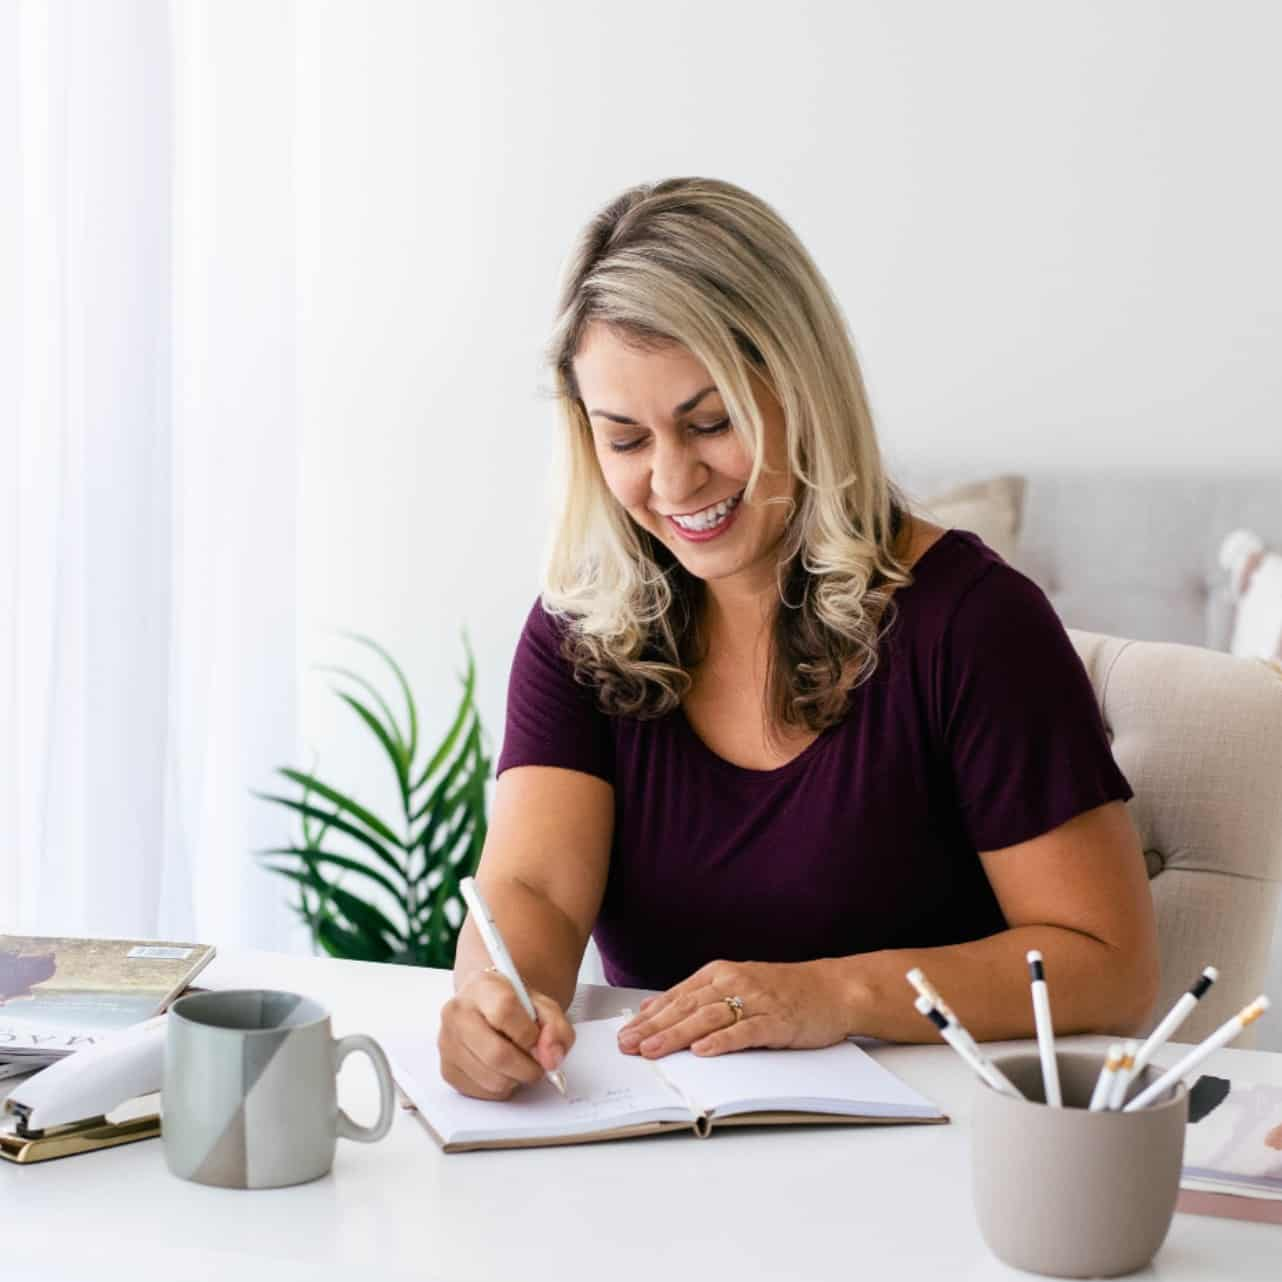 Image of a woman smiling as she sits at a desk and writes on a pad of paper.